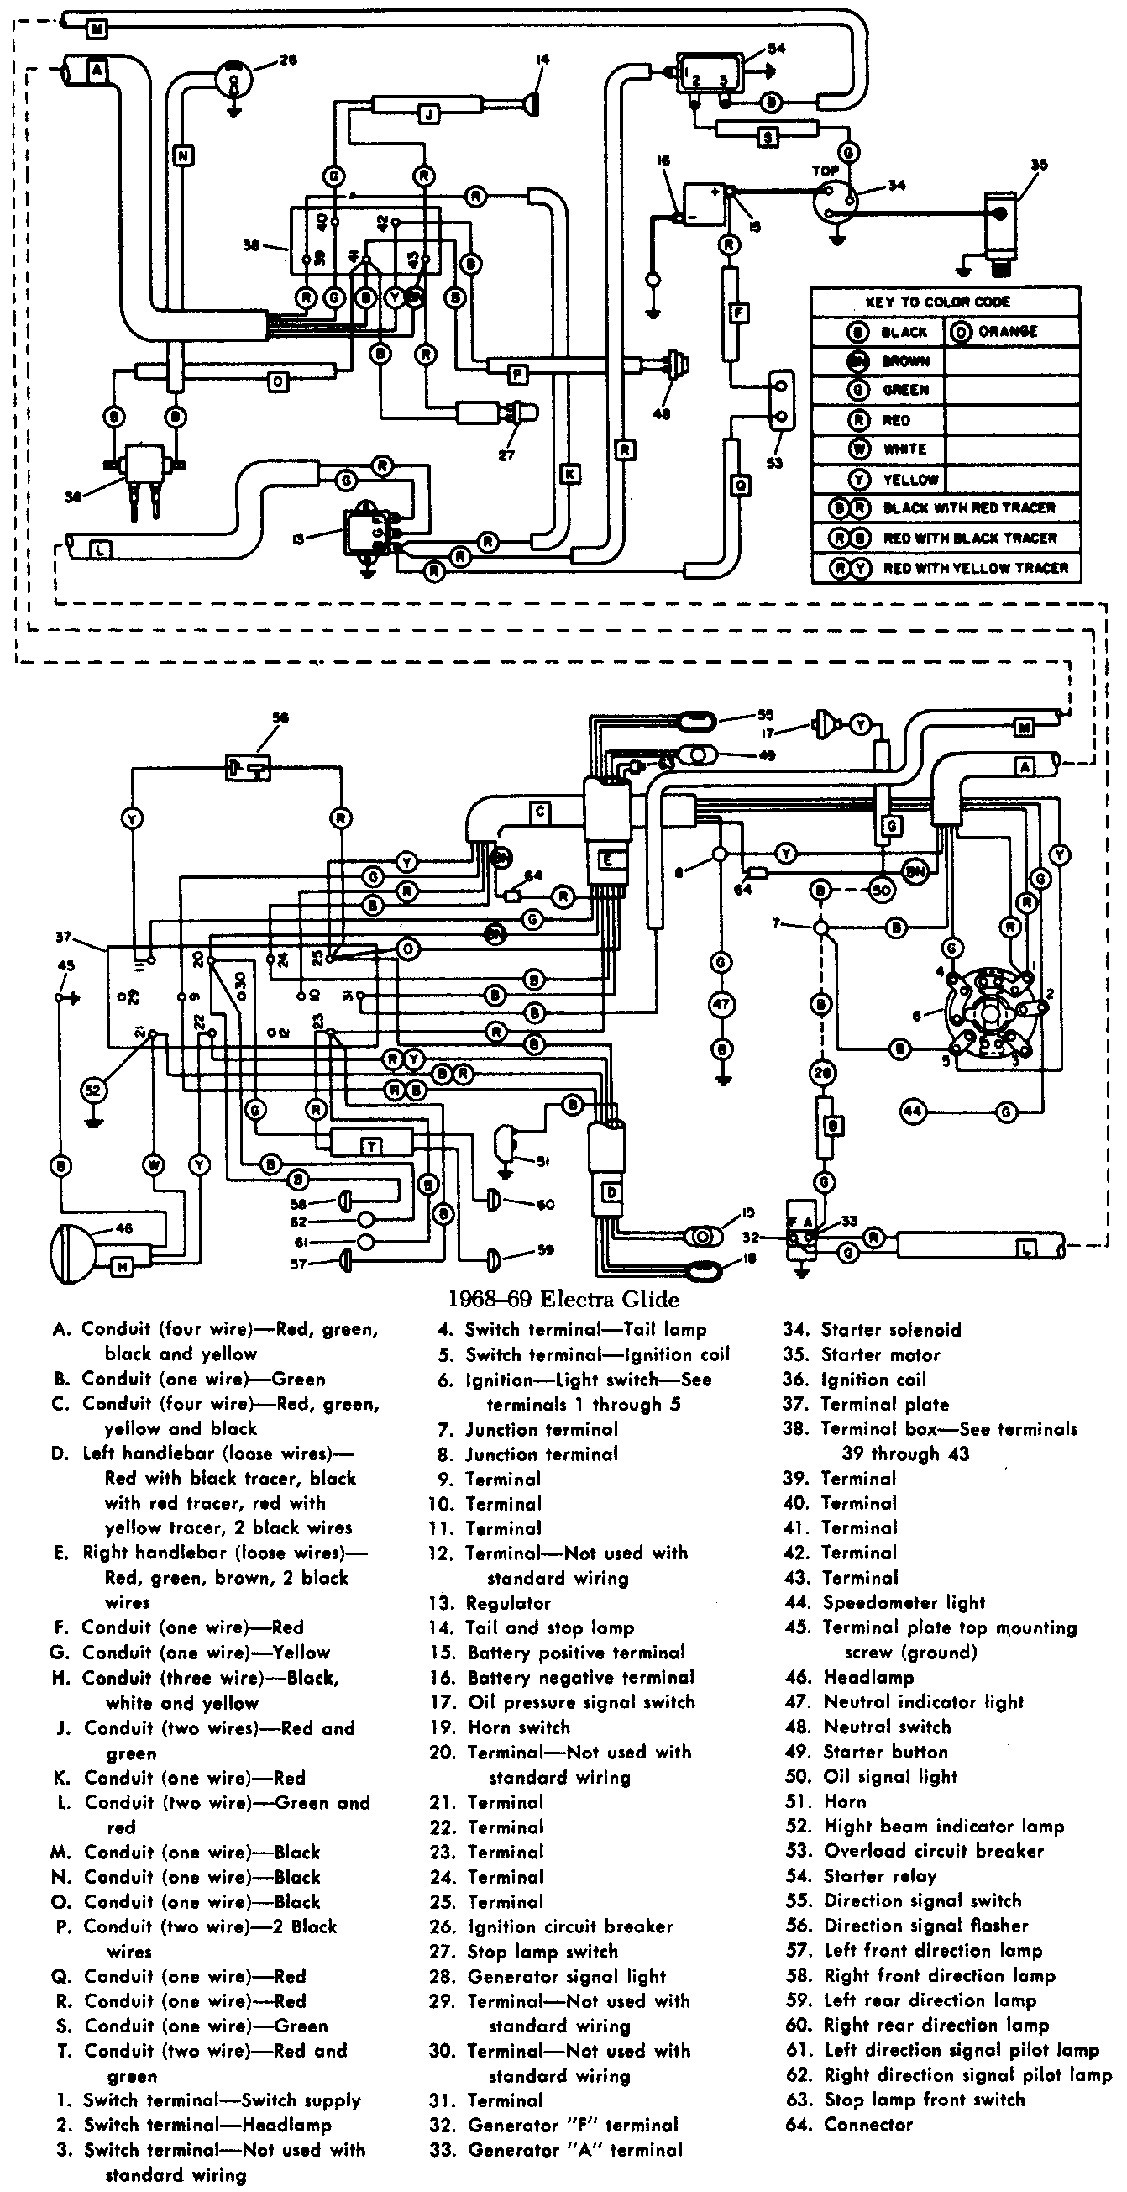 V Twin Engine Diagram Fresh Harley Davidson Ignition Switch Wiring Diagram  Diagram Of V Twin Engine